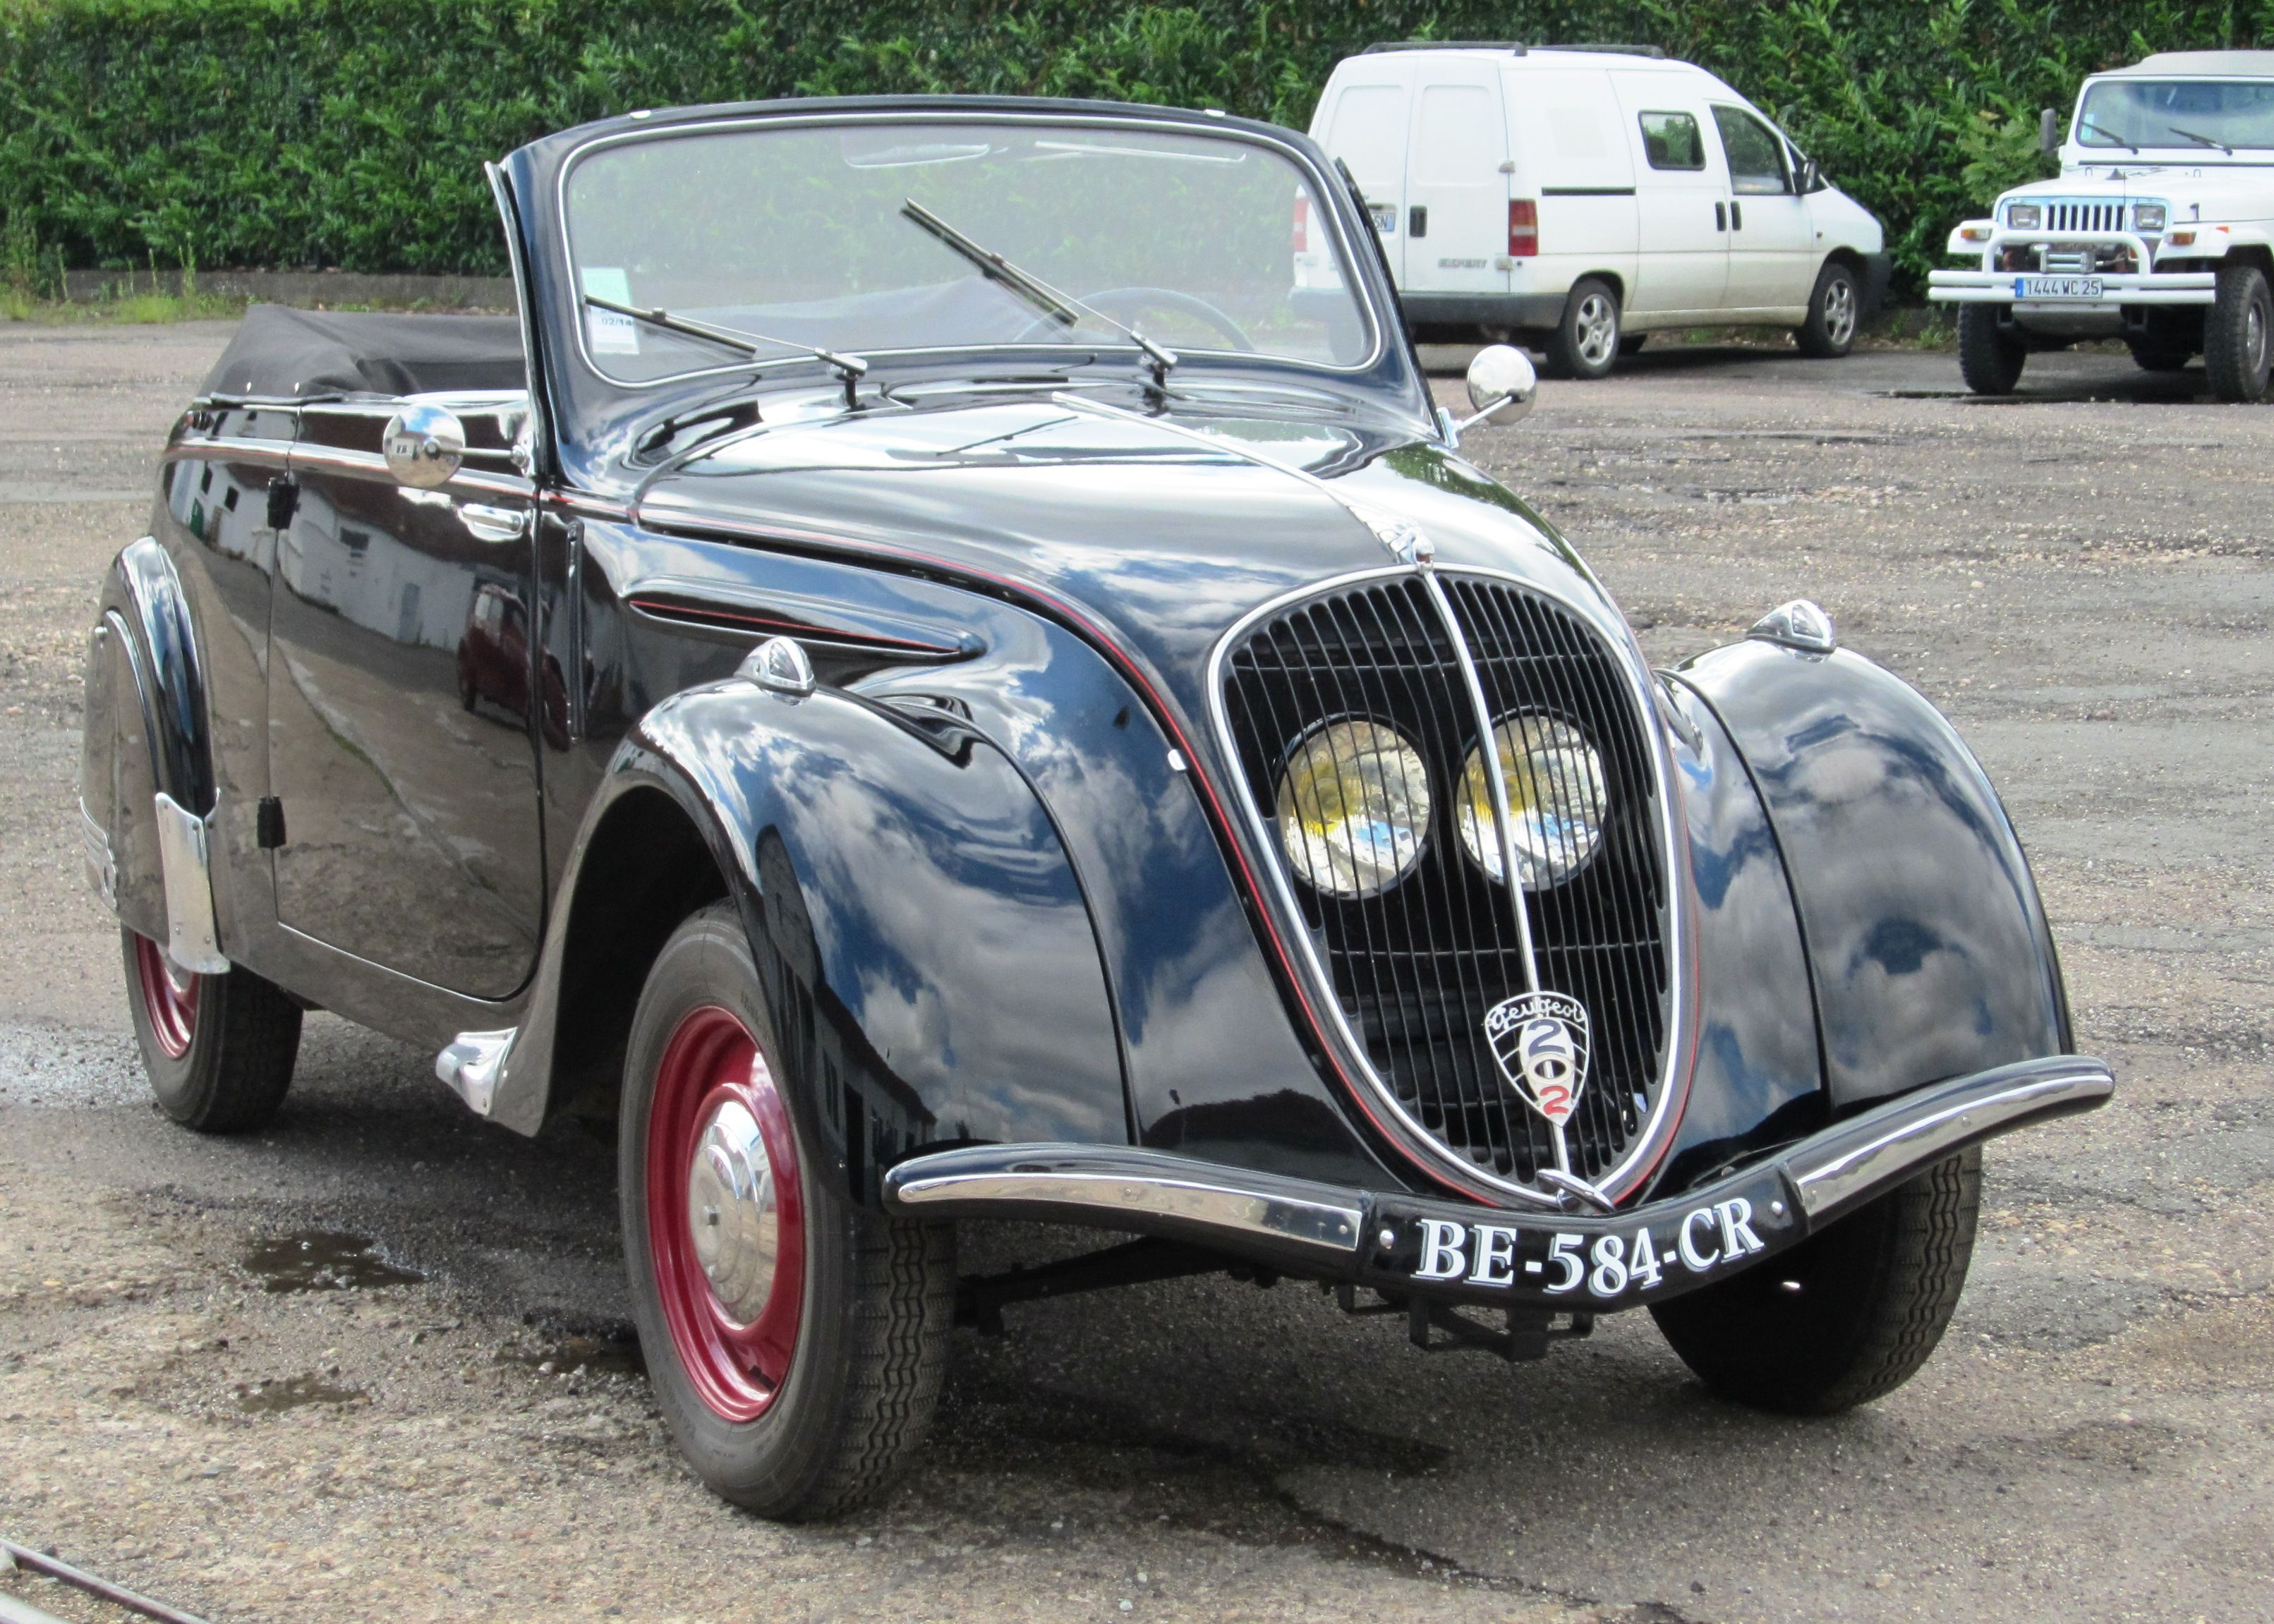 peugeot 202 cabriolet. the protected position of the headlights